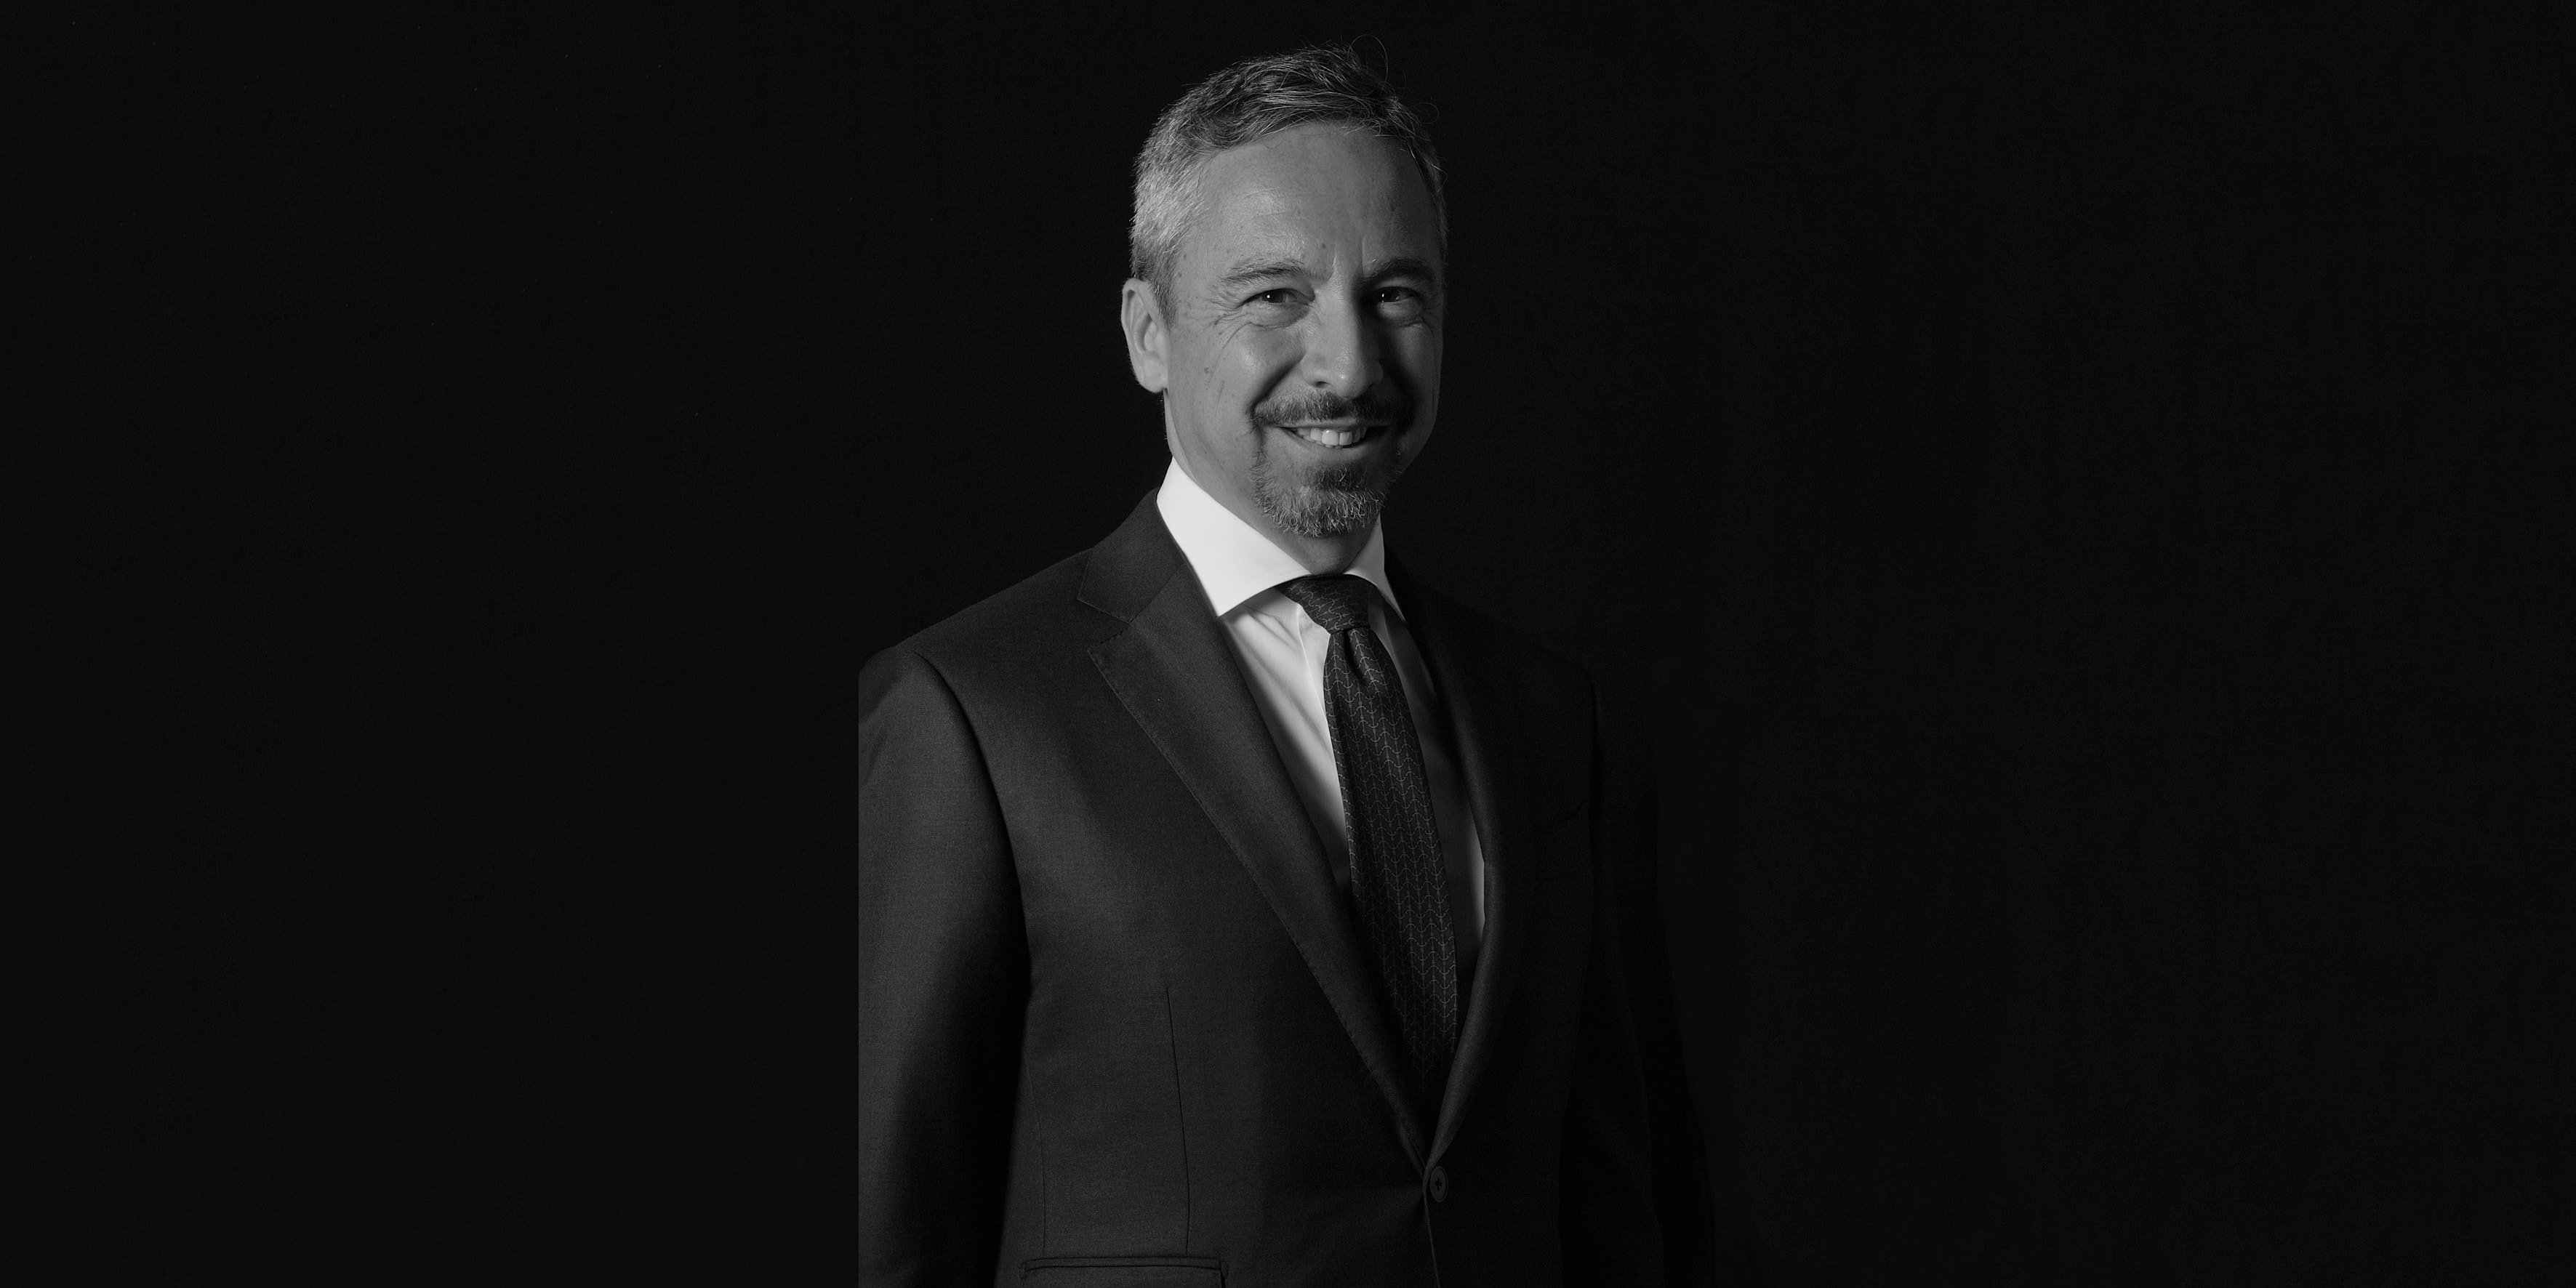 Chiomenti's partner Massimo Antonini has been appointed as a member of The International Fiscal Association Executive Committee